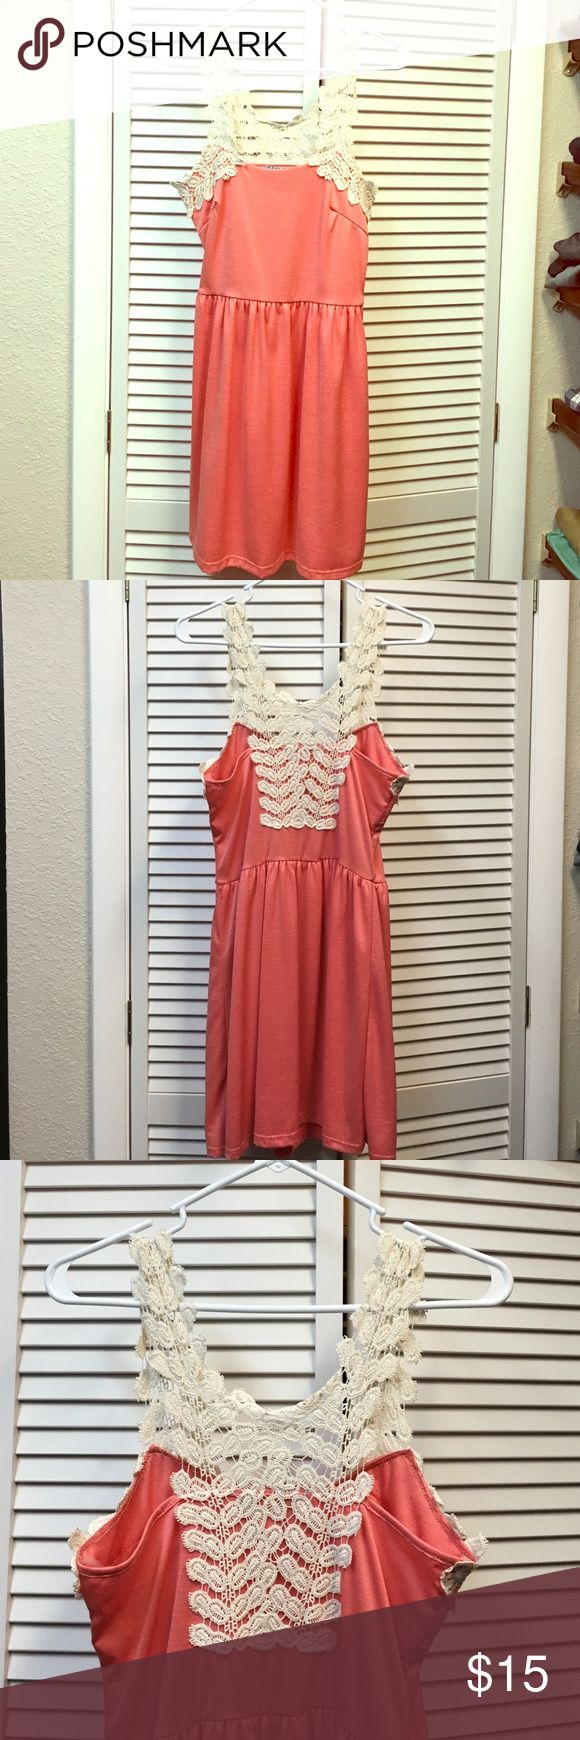 Coral lace dress Coral lace dress. Great airy, summer dress for picnics or BBQs. Material is stretchy and flattering. Worn once, great condition. From Francesca's boutique. Length from shoulder is 35.5 inches Francesca's Collections Dresses Mini